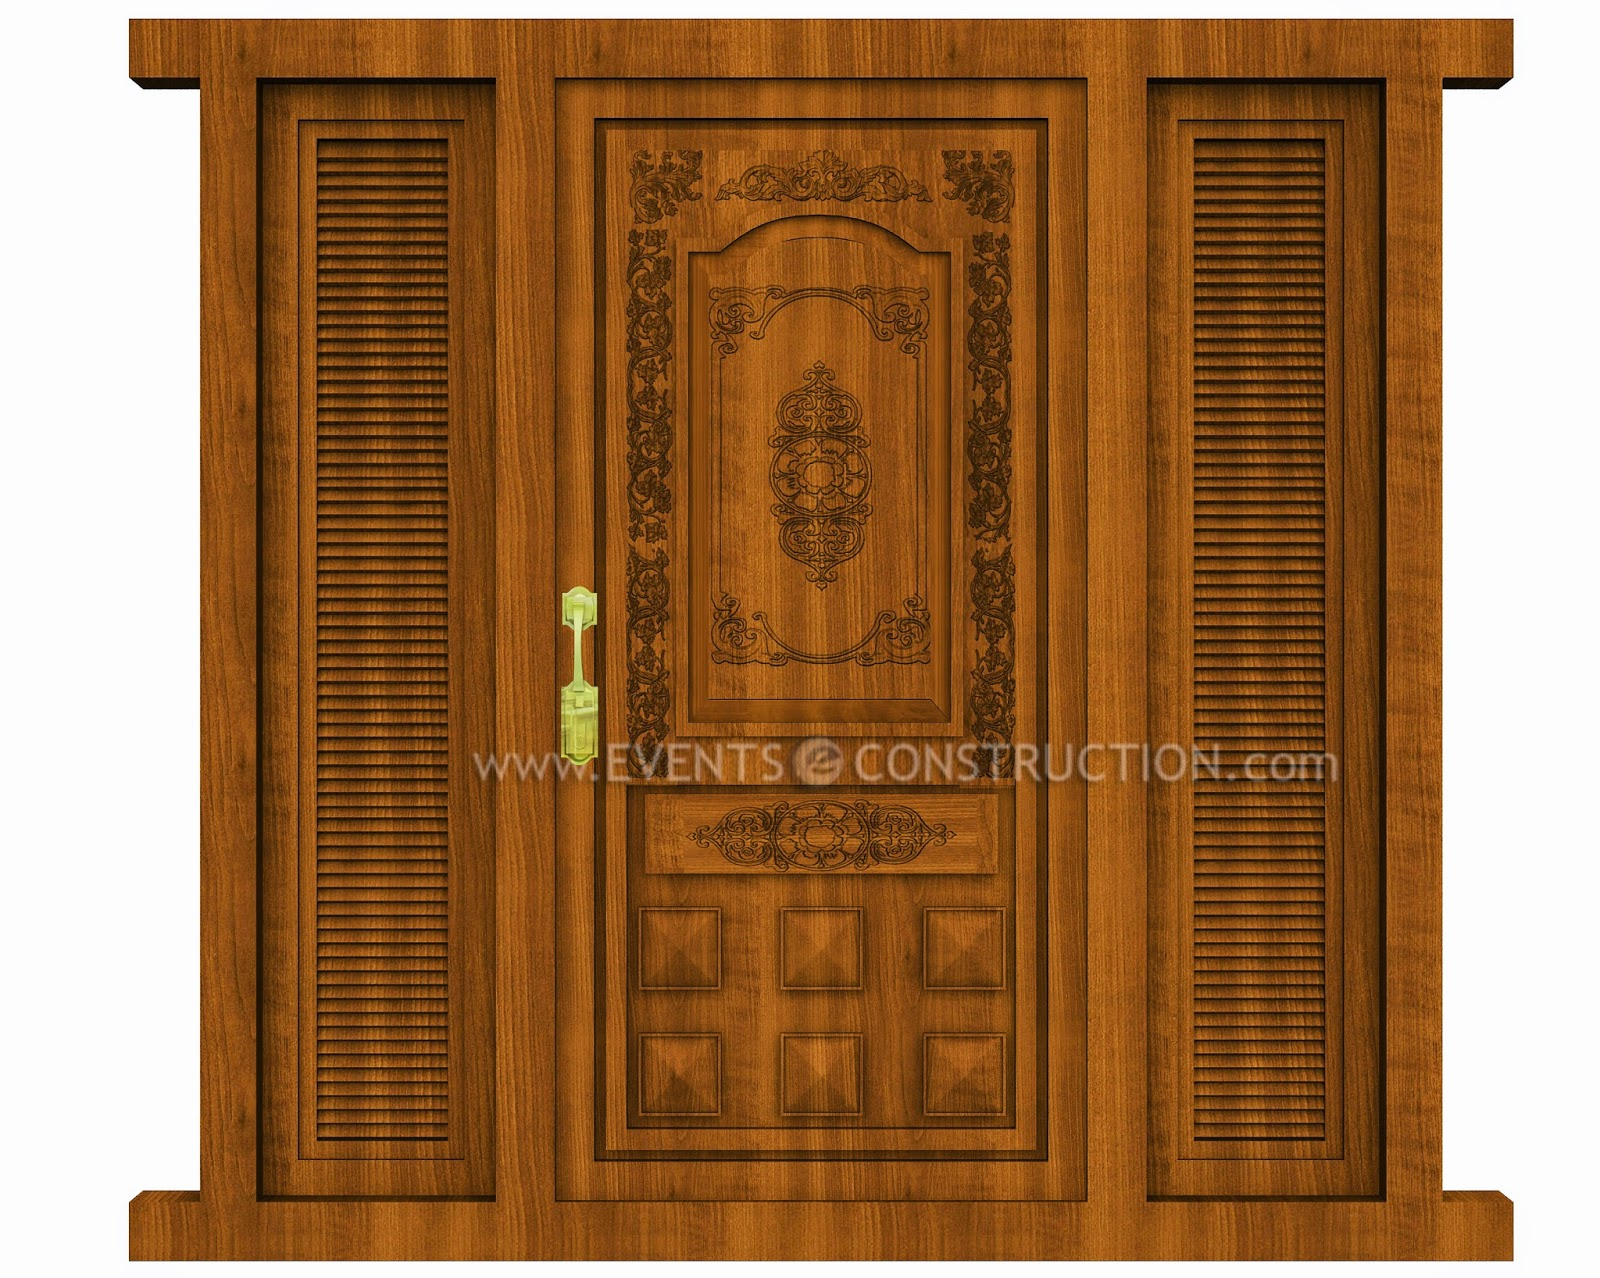 Maindoor designs joy studio design gallery best design for Main door design of wood